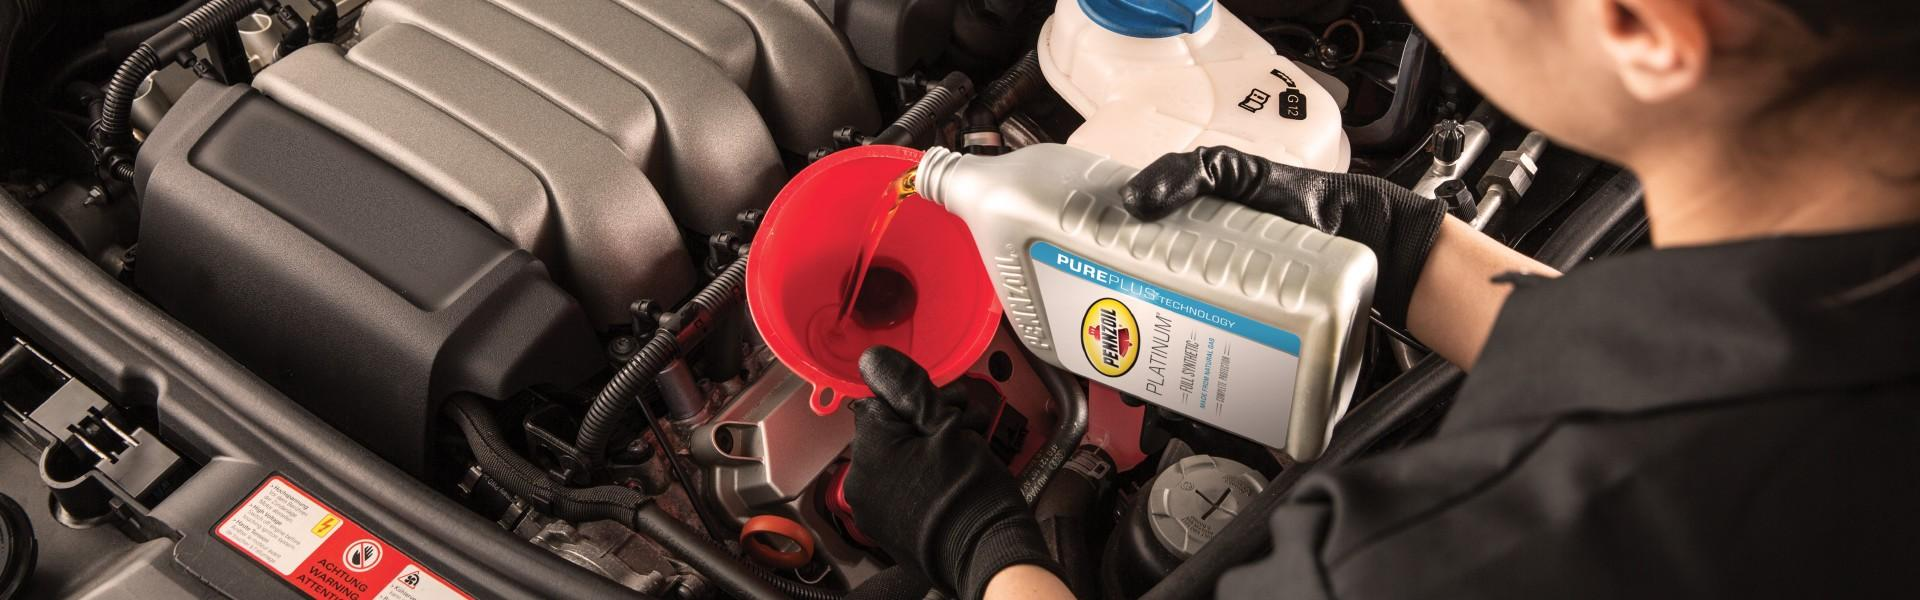 When Should You Change Your Oil